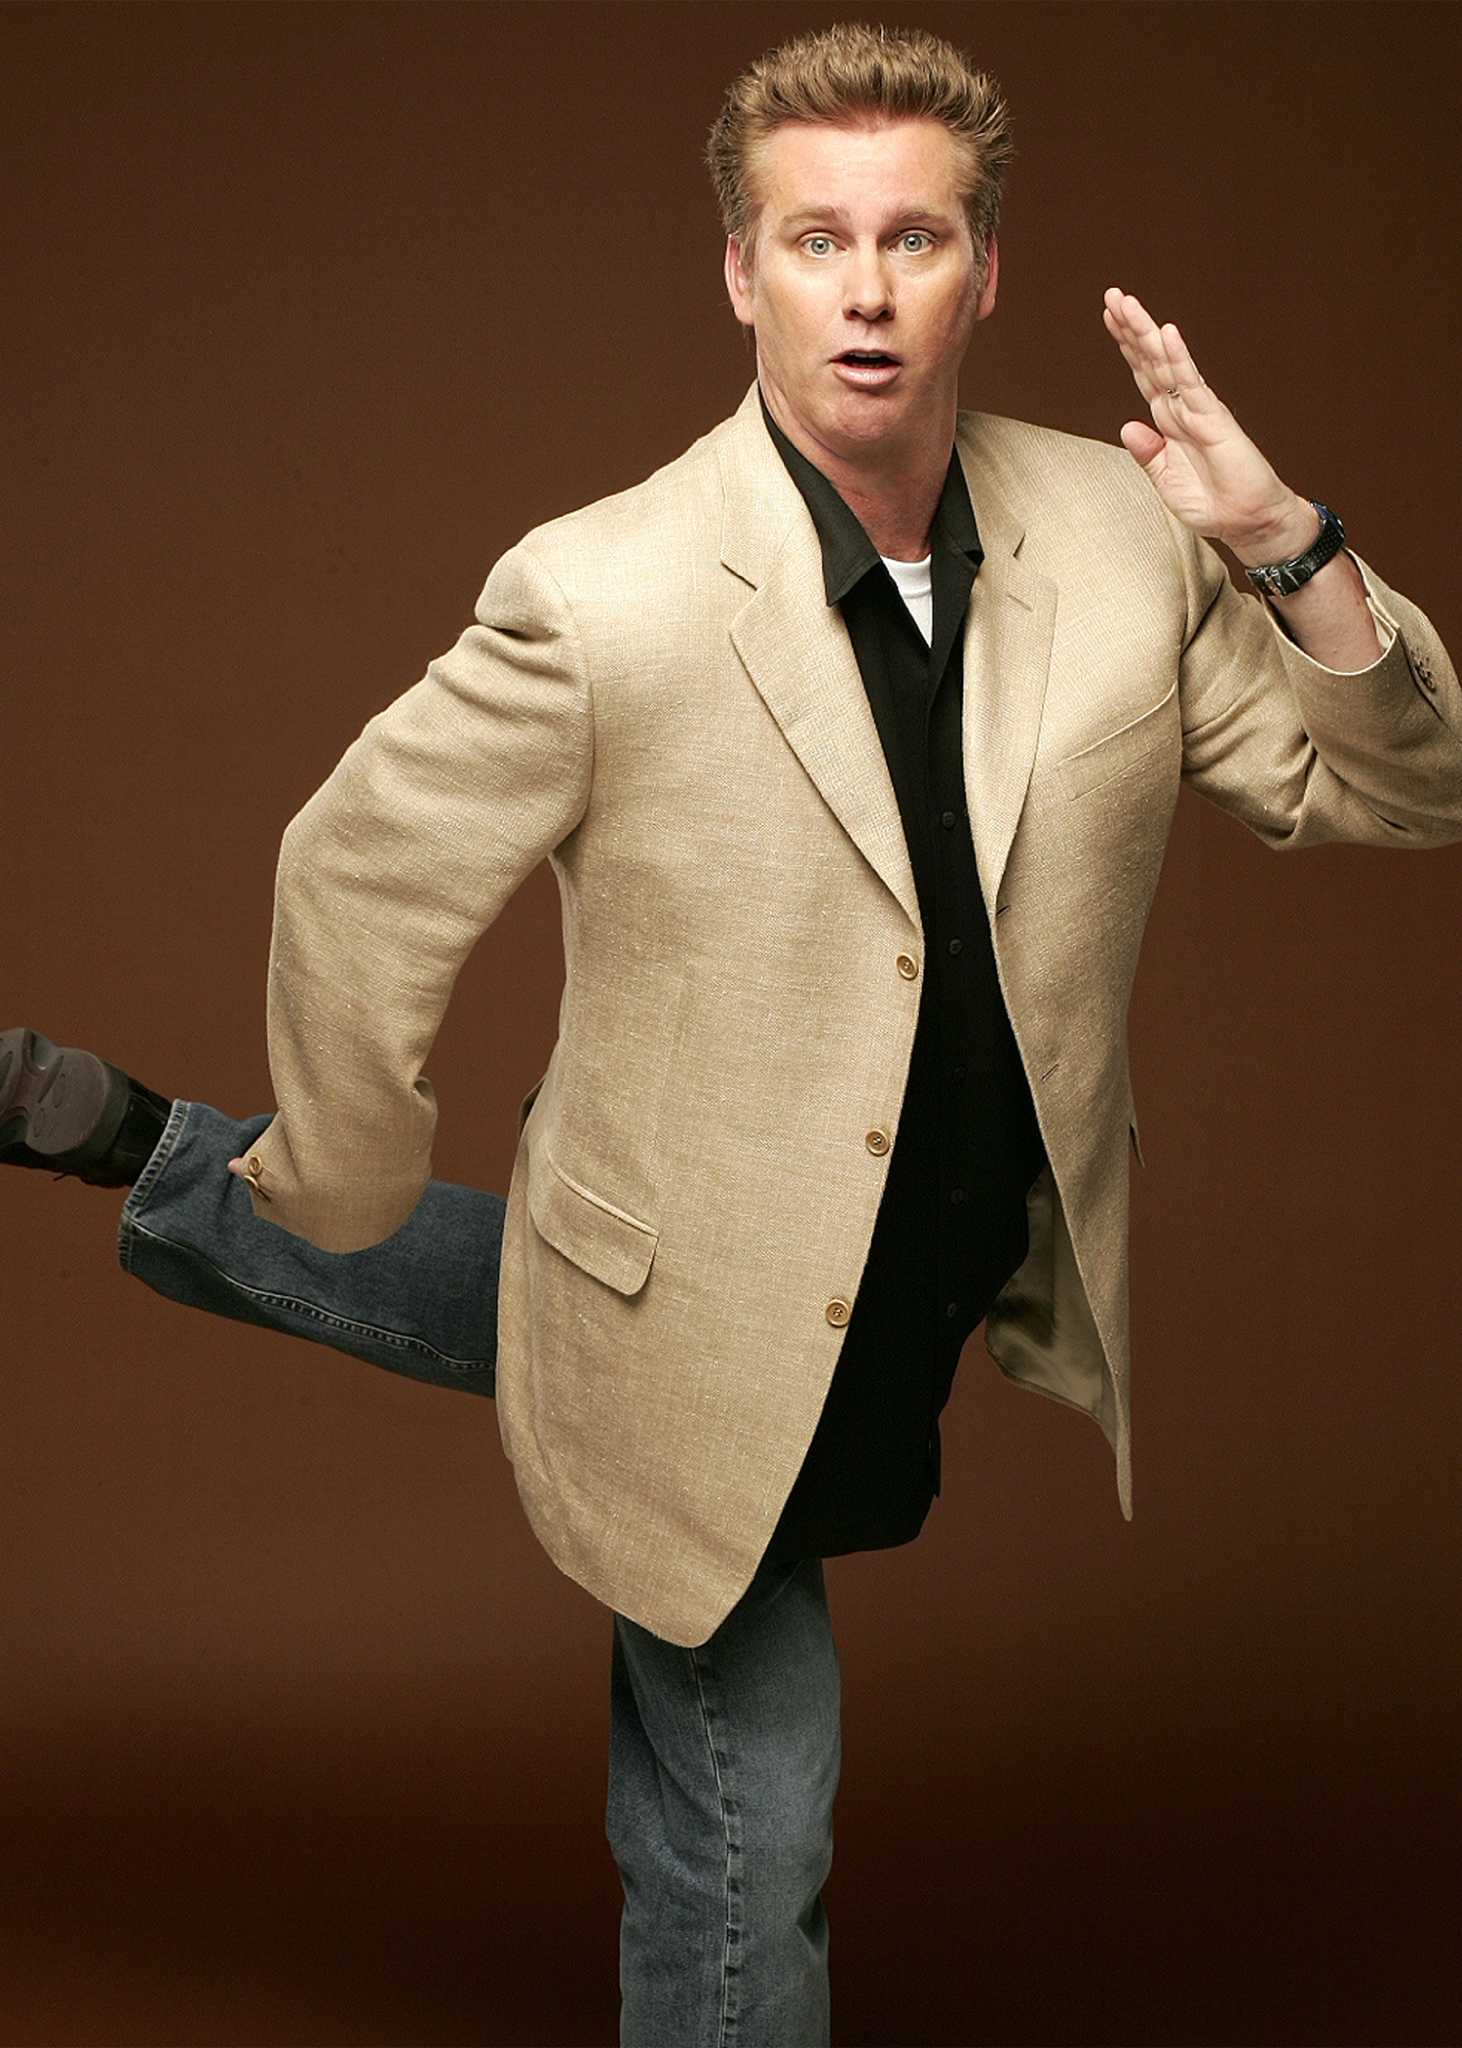 Golf Cars For Sale >> Brian Regan's humor very unedgy